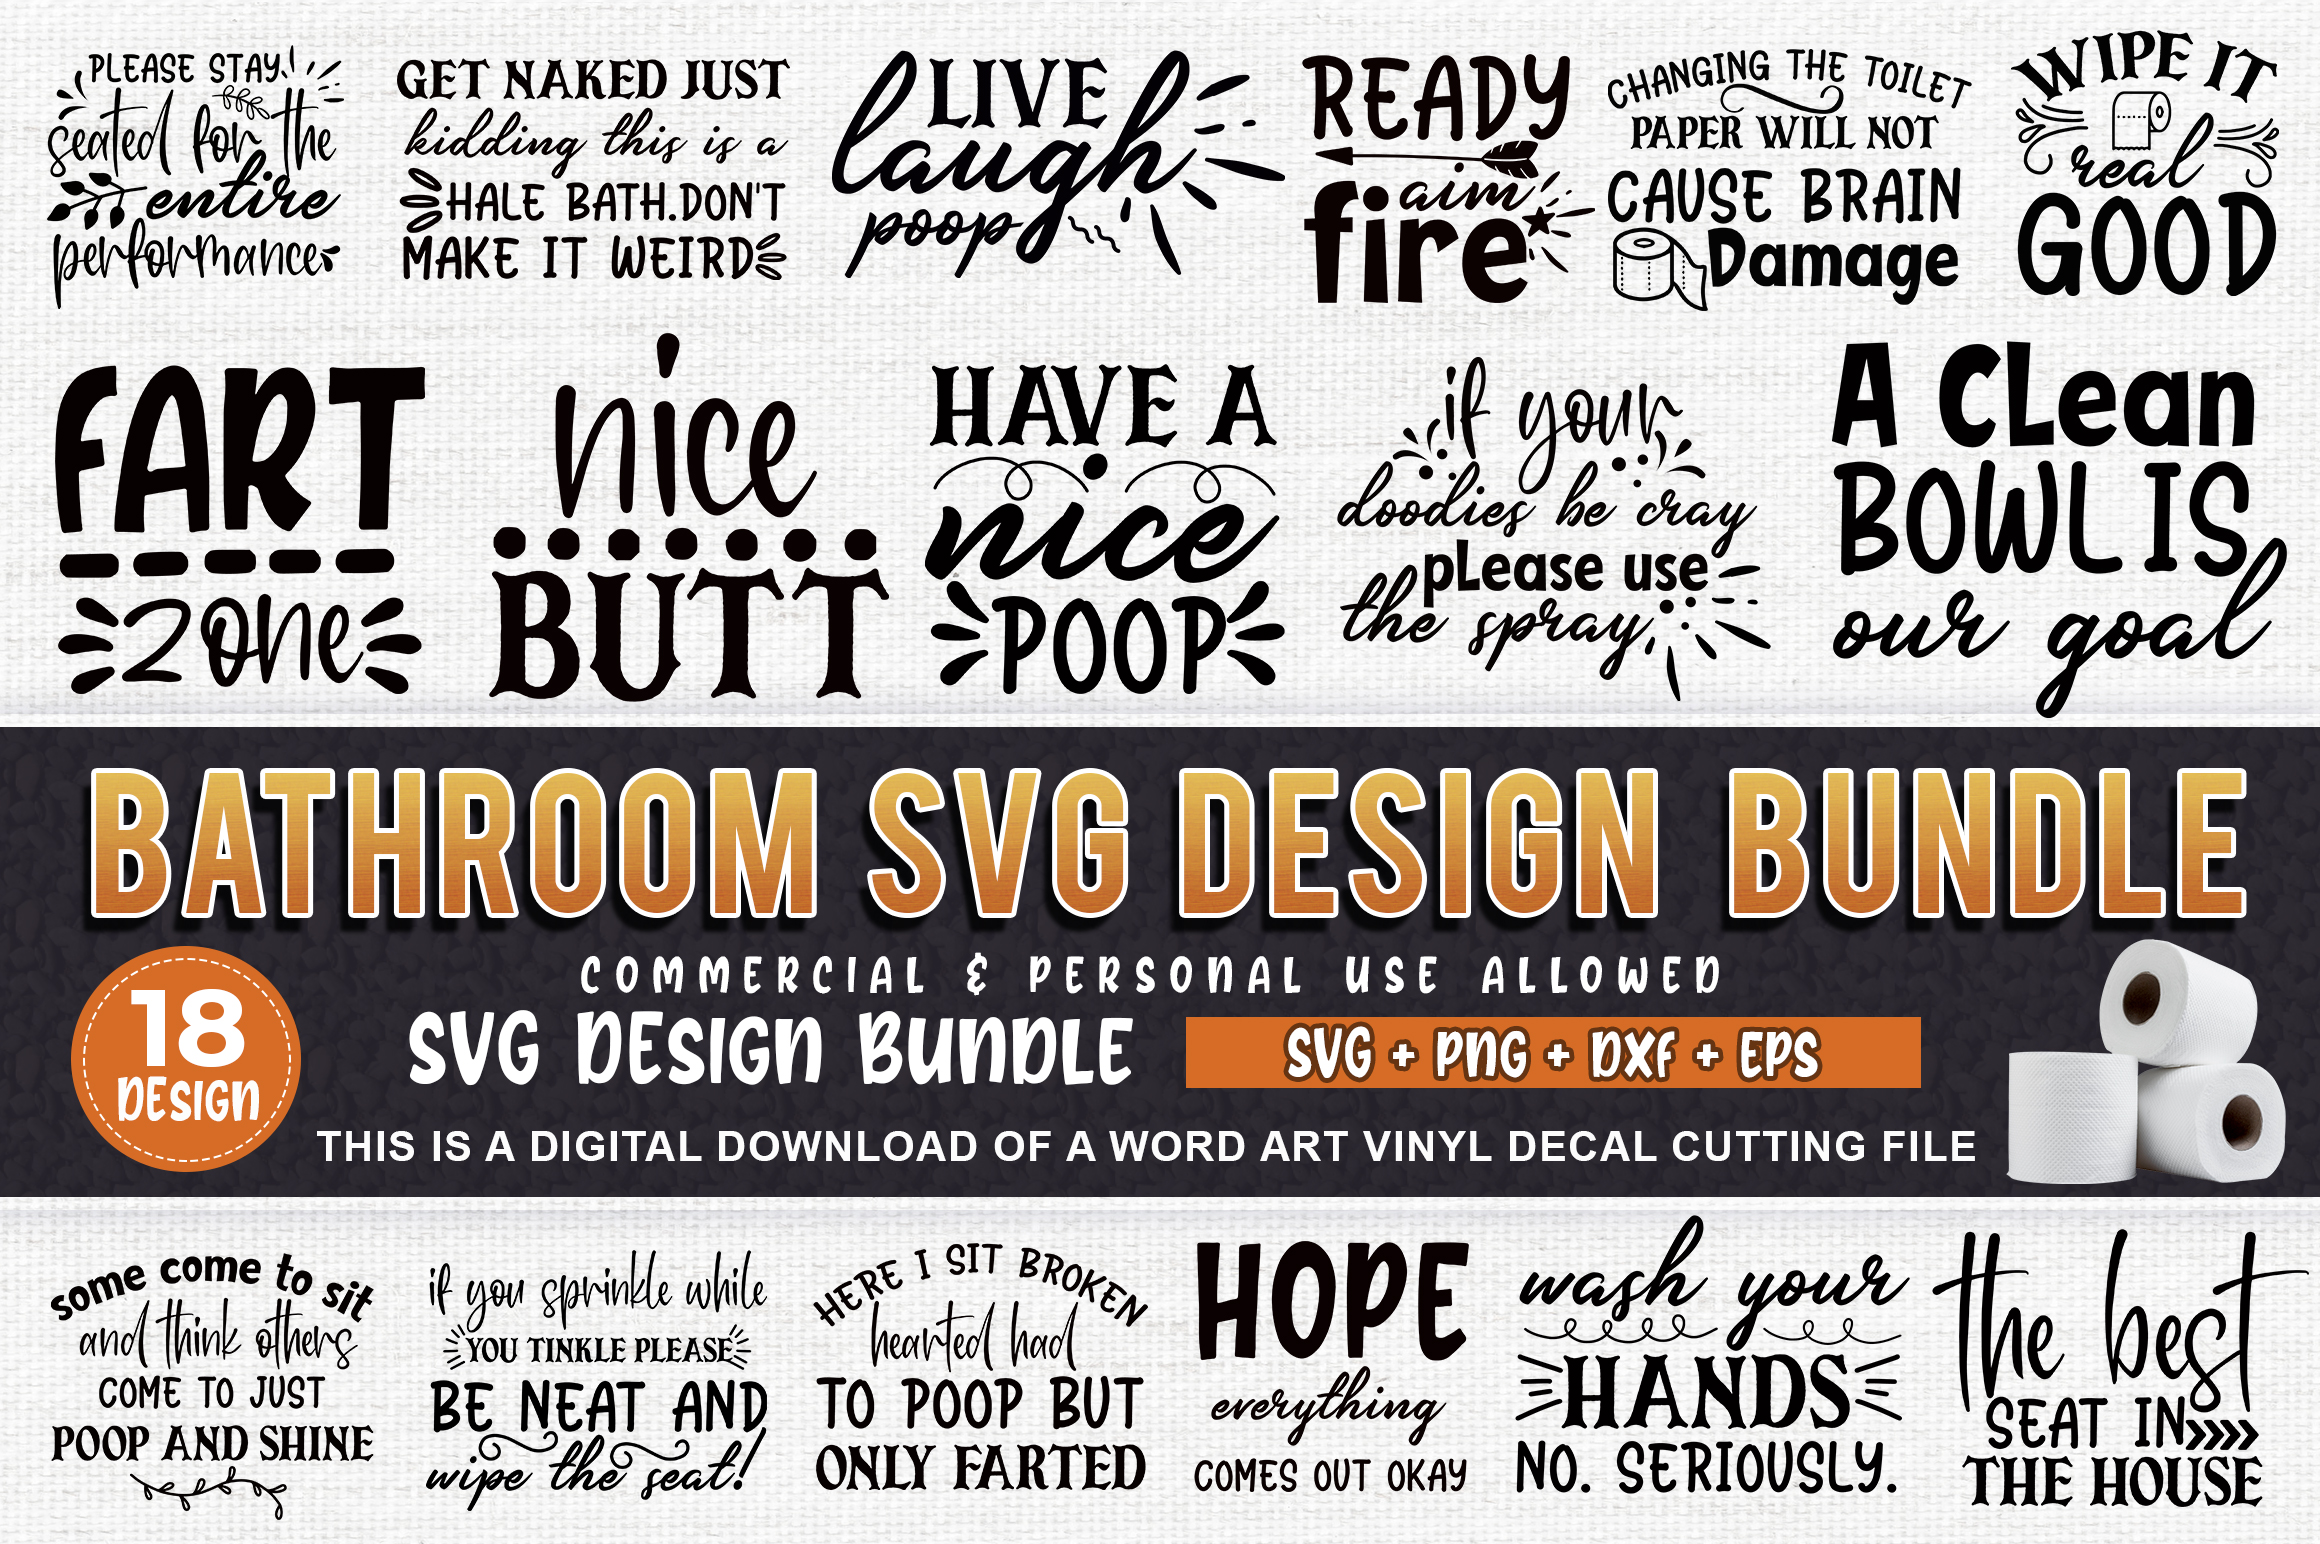 510 SVG DESIGN THE MIGHTY BUNDLE |32 DIFFERENT BUNDLES example image 12